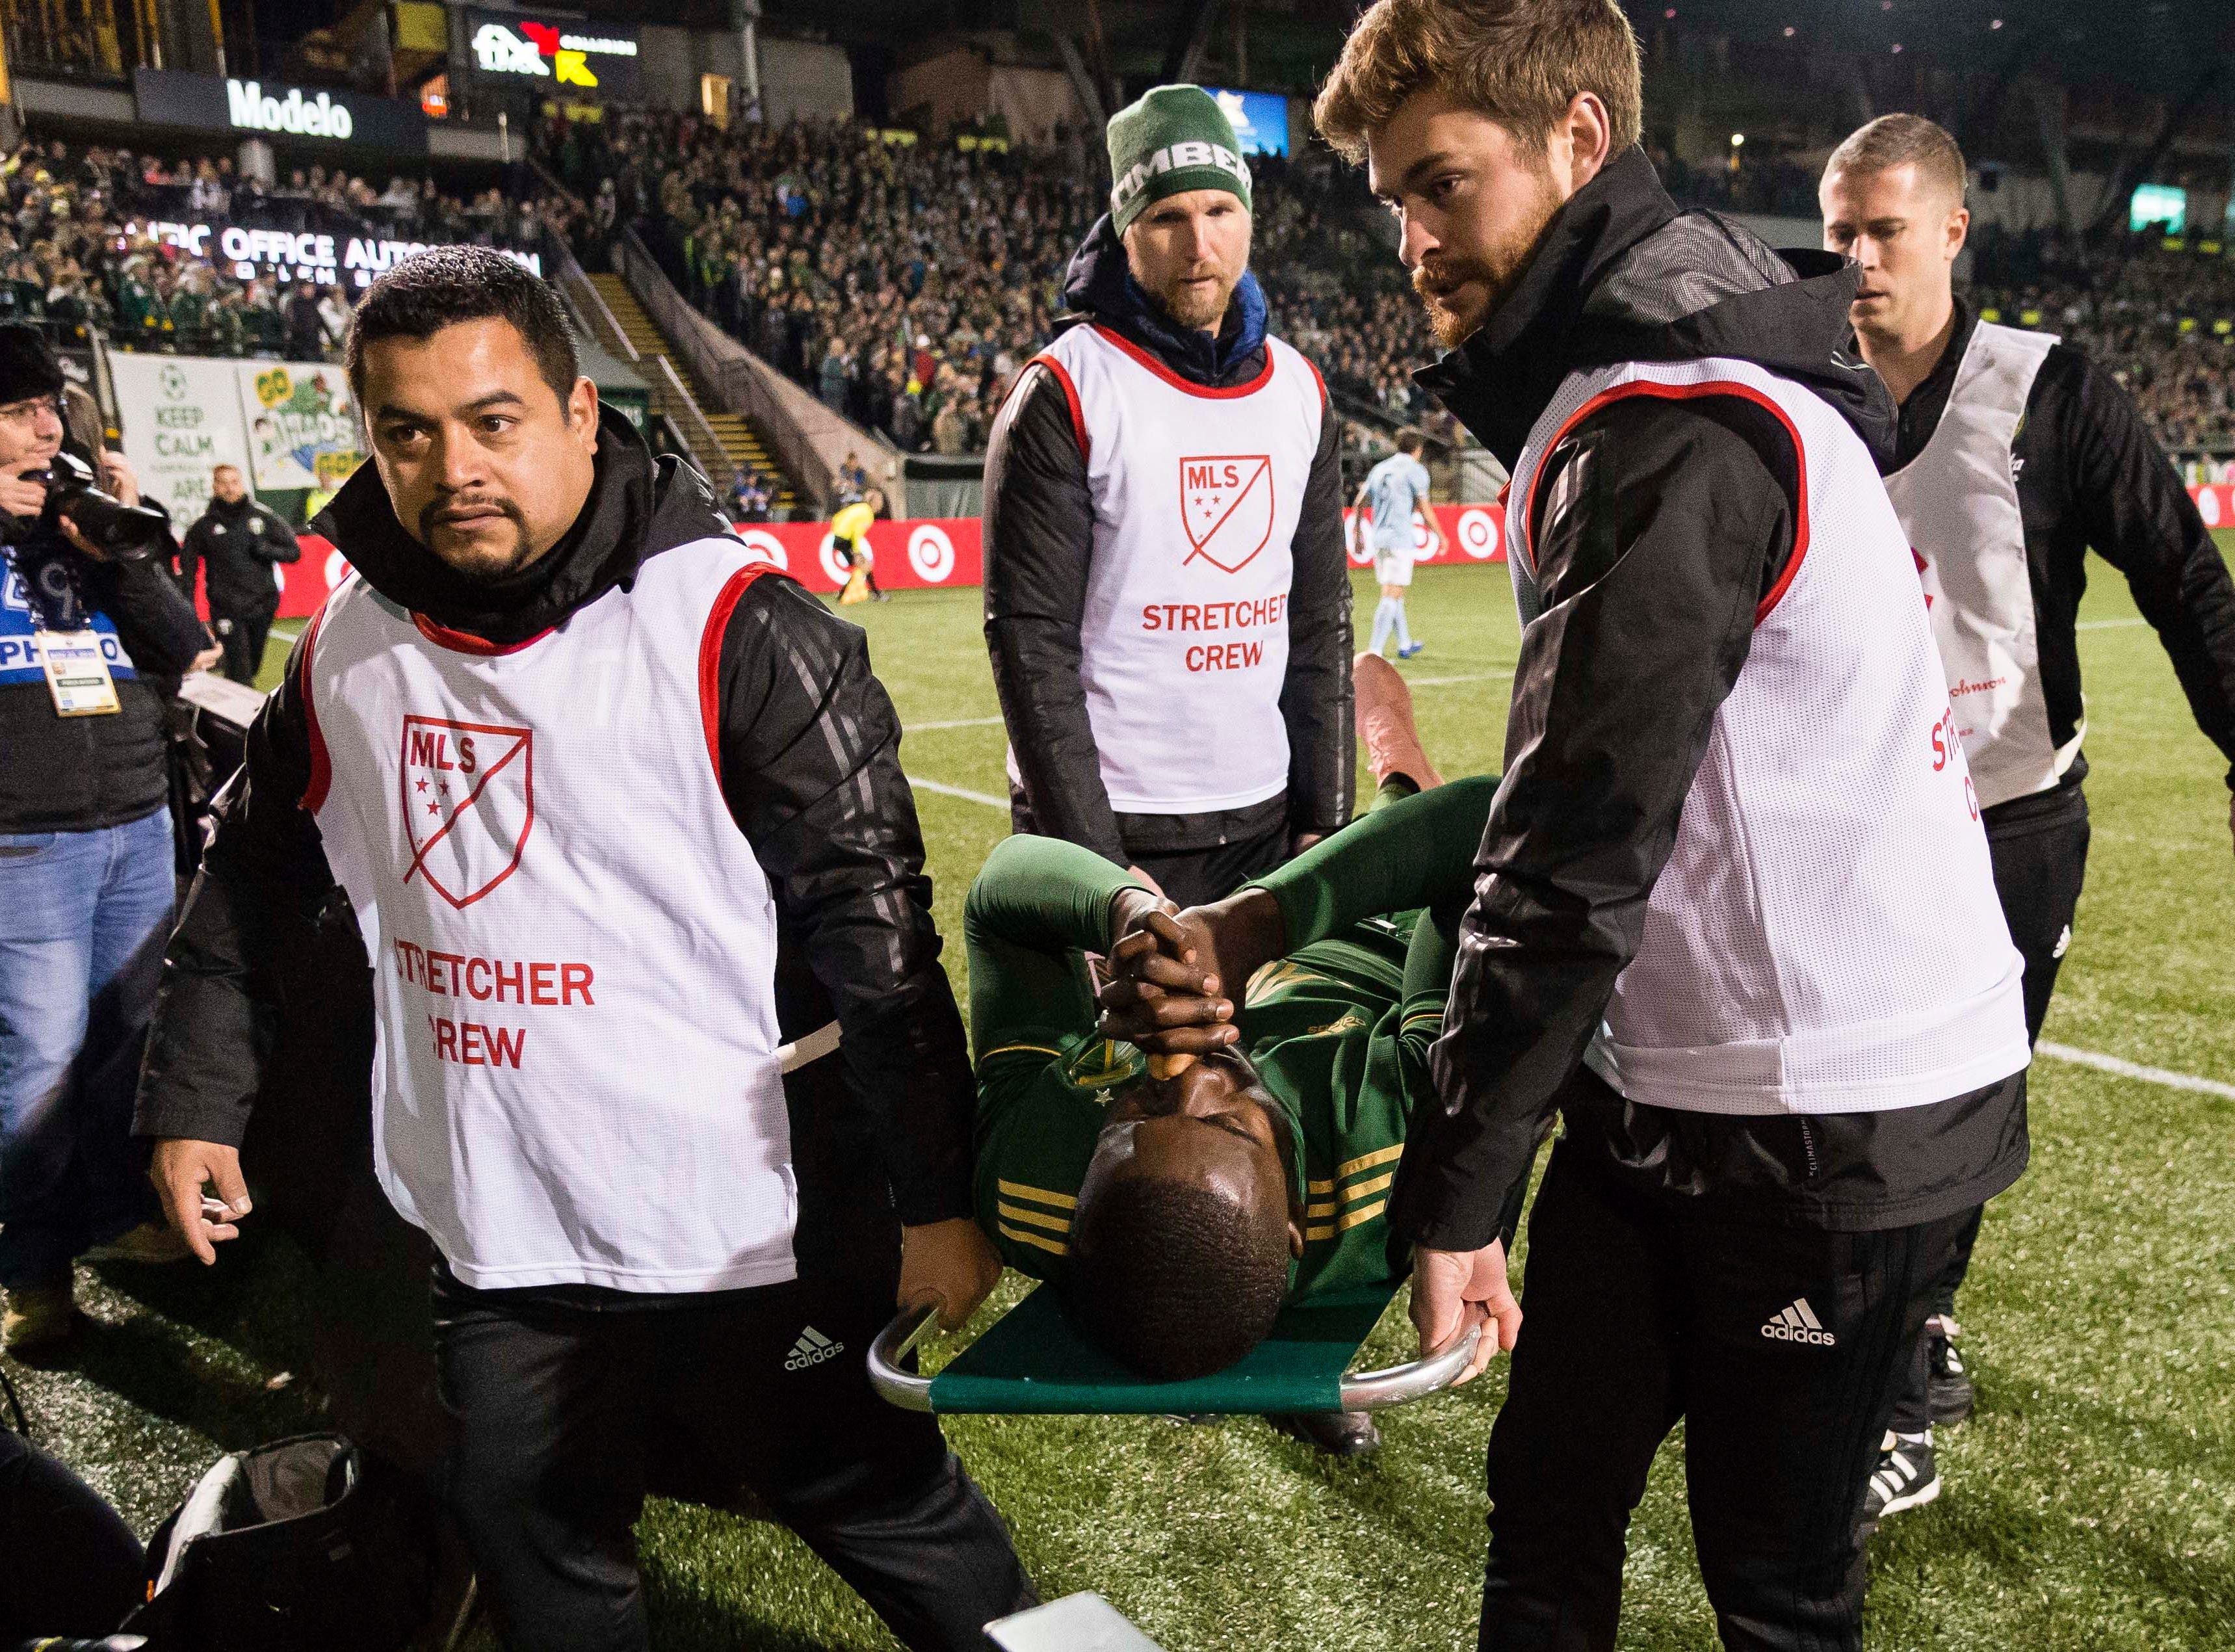 Nov 25, 2018; Portland, OR, USA; Portland Timbers defender Larrys Mabiala (33) is taken off the field on a stretcher during the first half against Sporting Kansas City in the first leg of the MLS Western Conference Championship at Providence Park. The game ended tied 0-0. Mandatory Credit: Troy Wayrynen-USA TODAY Sports